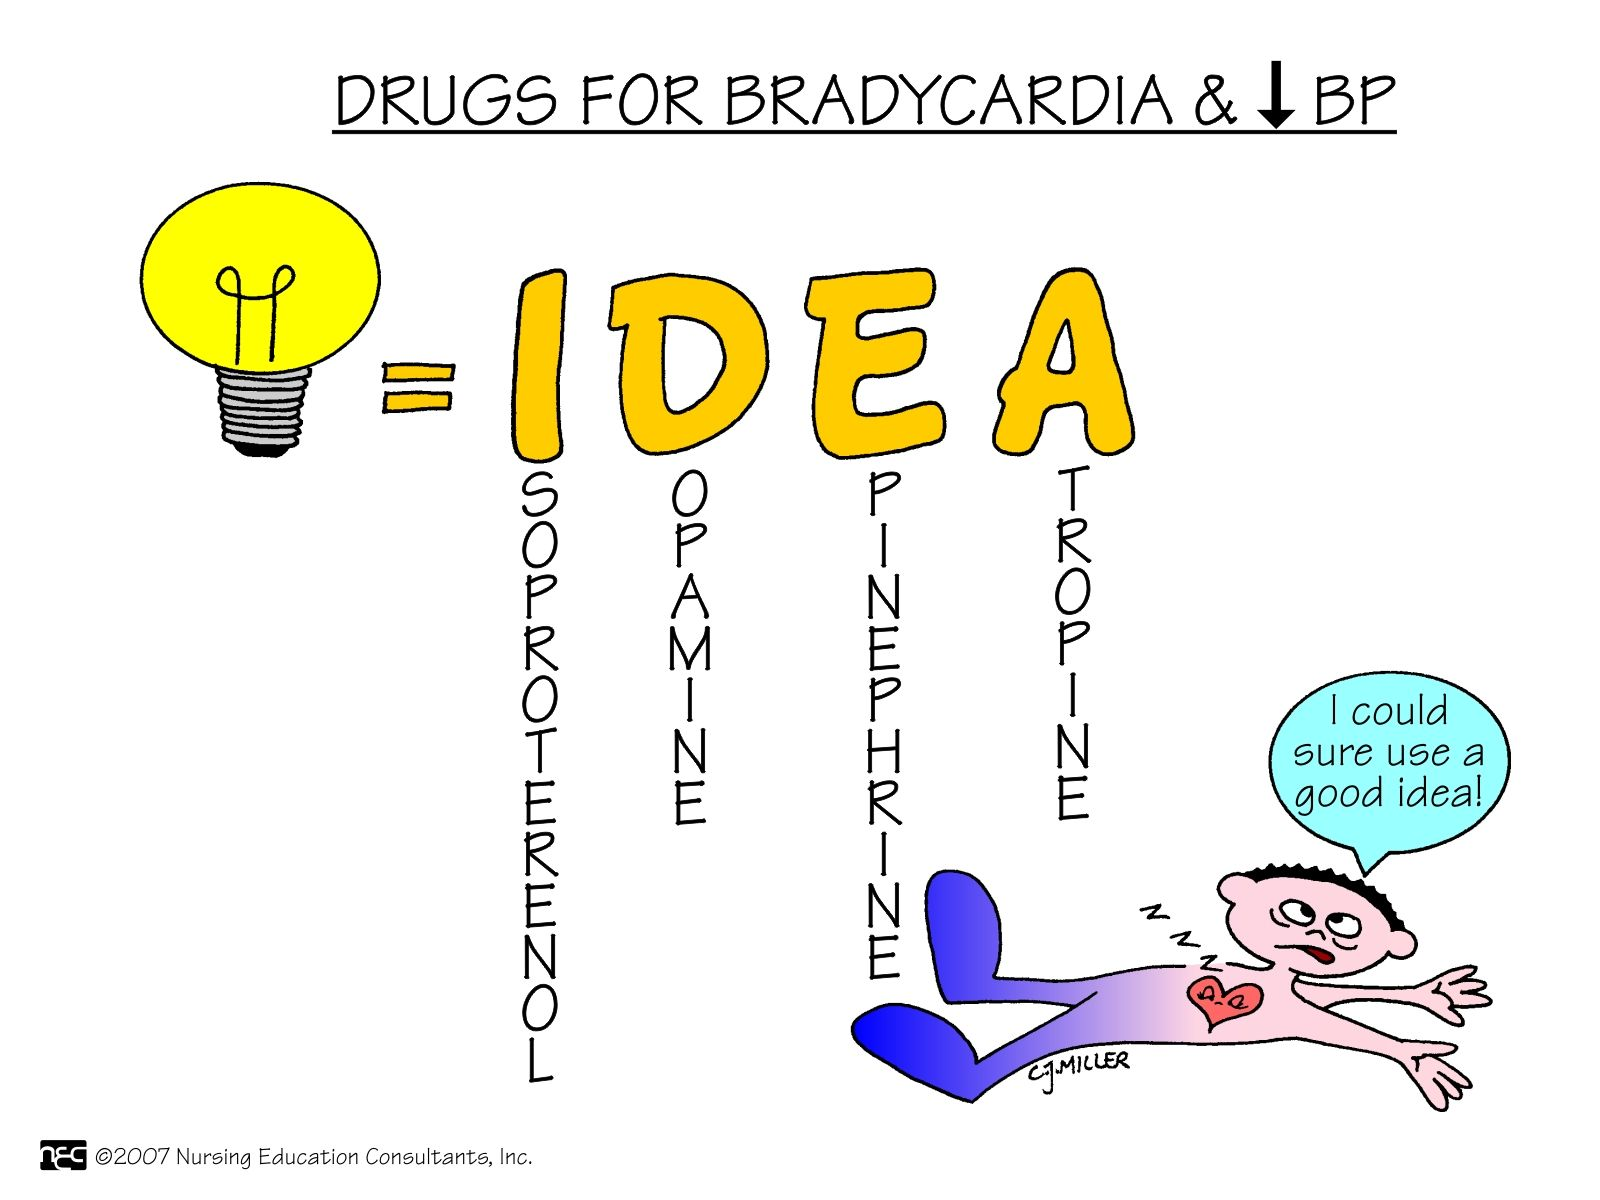 Medical abbreviations taco - Drugs For Bradycardia And Low Blood Pressure Use Idea To Treat Bradycardia And Hypotension